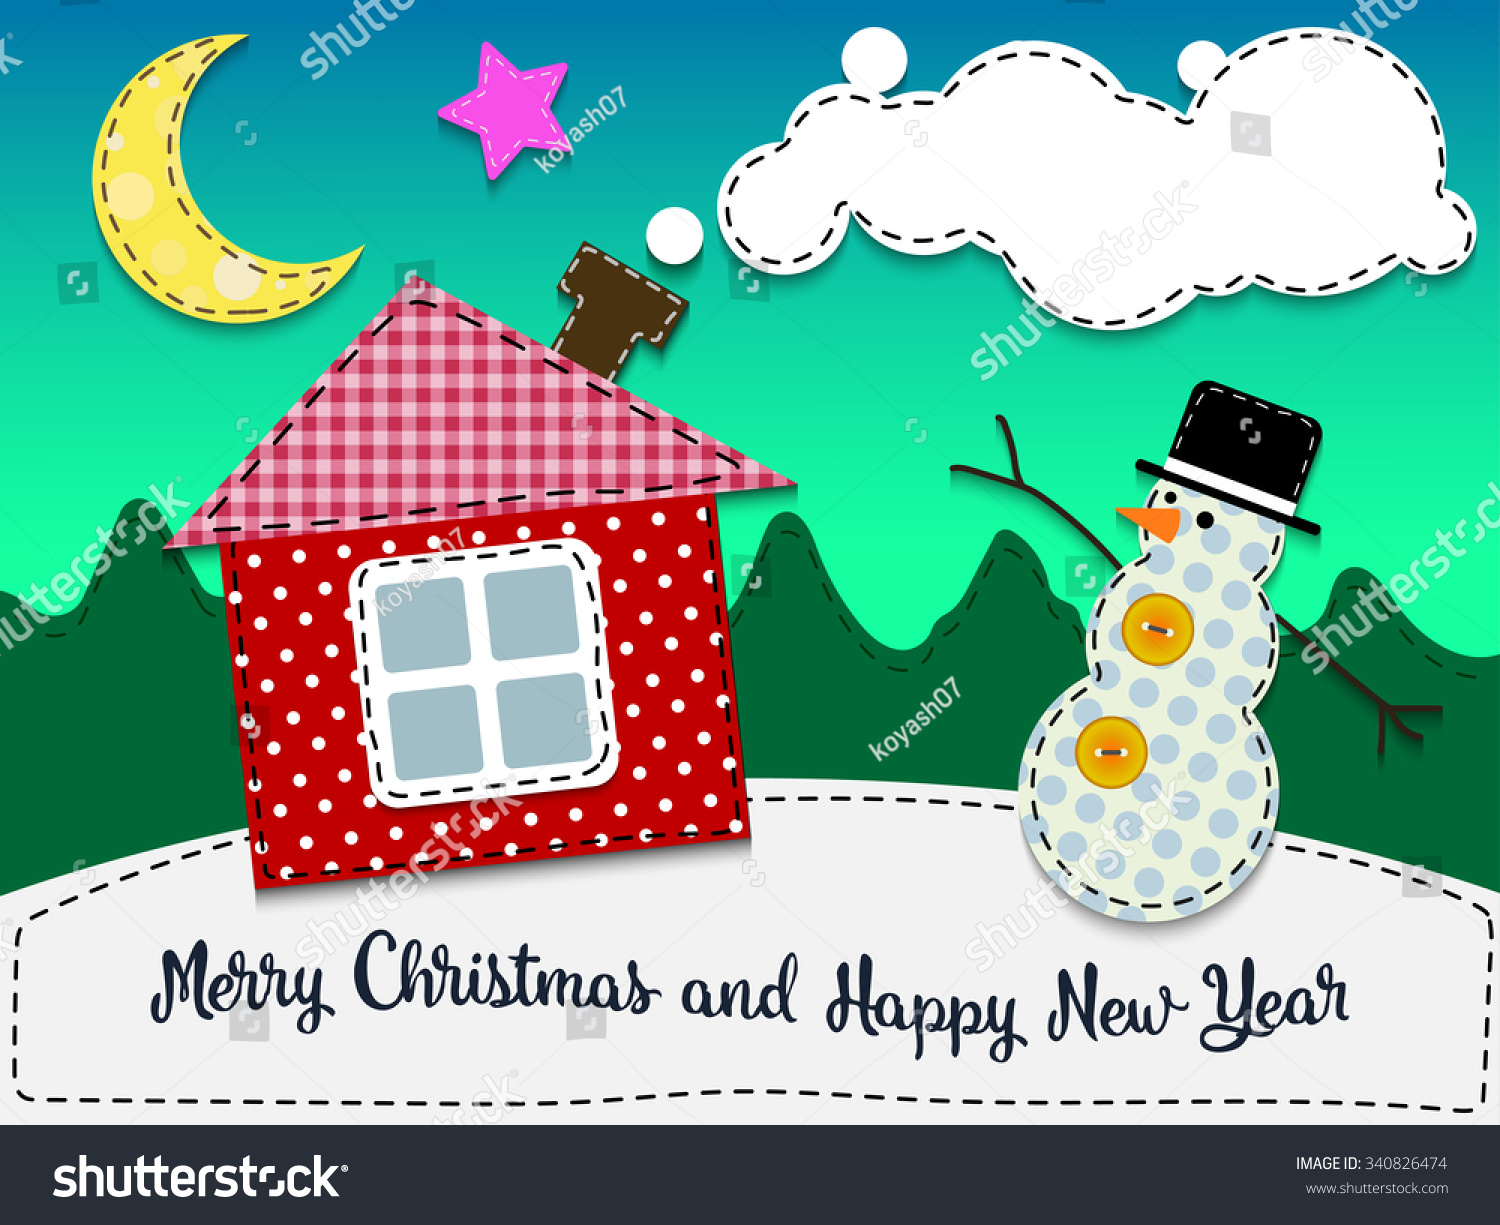 Merry christmas happy new year greeting stock vector royalty free merry christmas and happy new year greeting card textile fabric stitched applique m4hsunfo